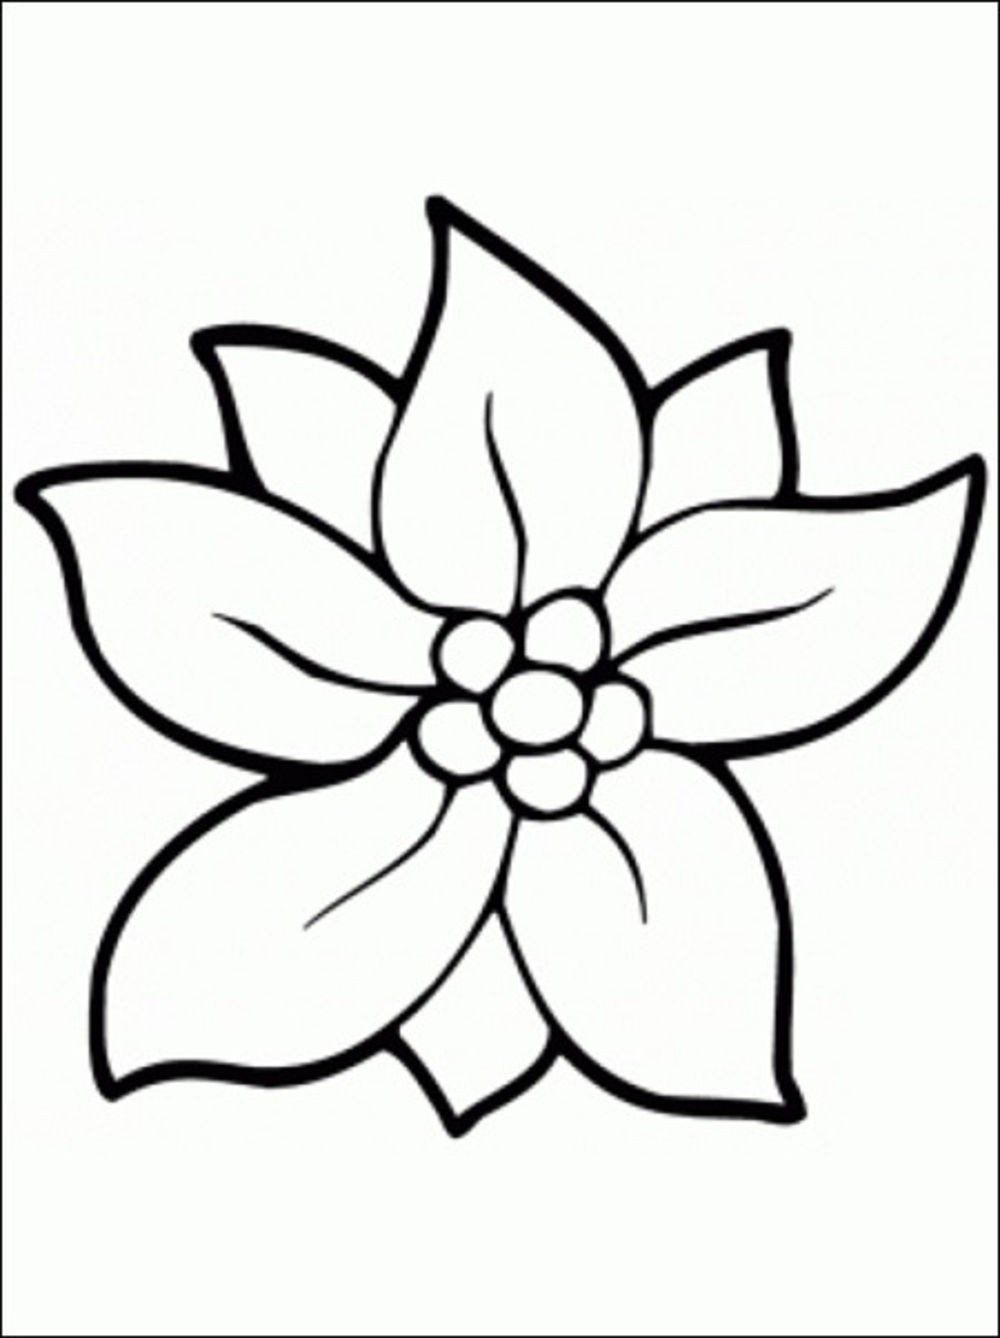 Print & Download - Some Common Variations of the Flower ...   free printable coloring sheets flowers